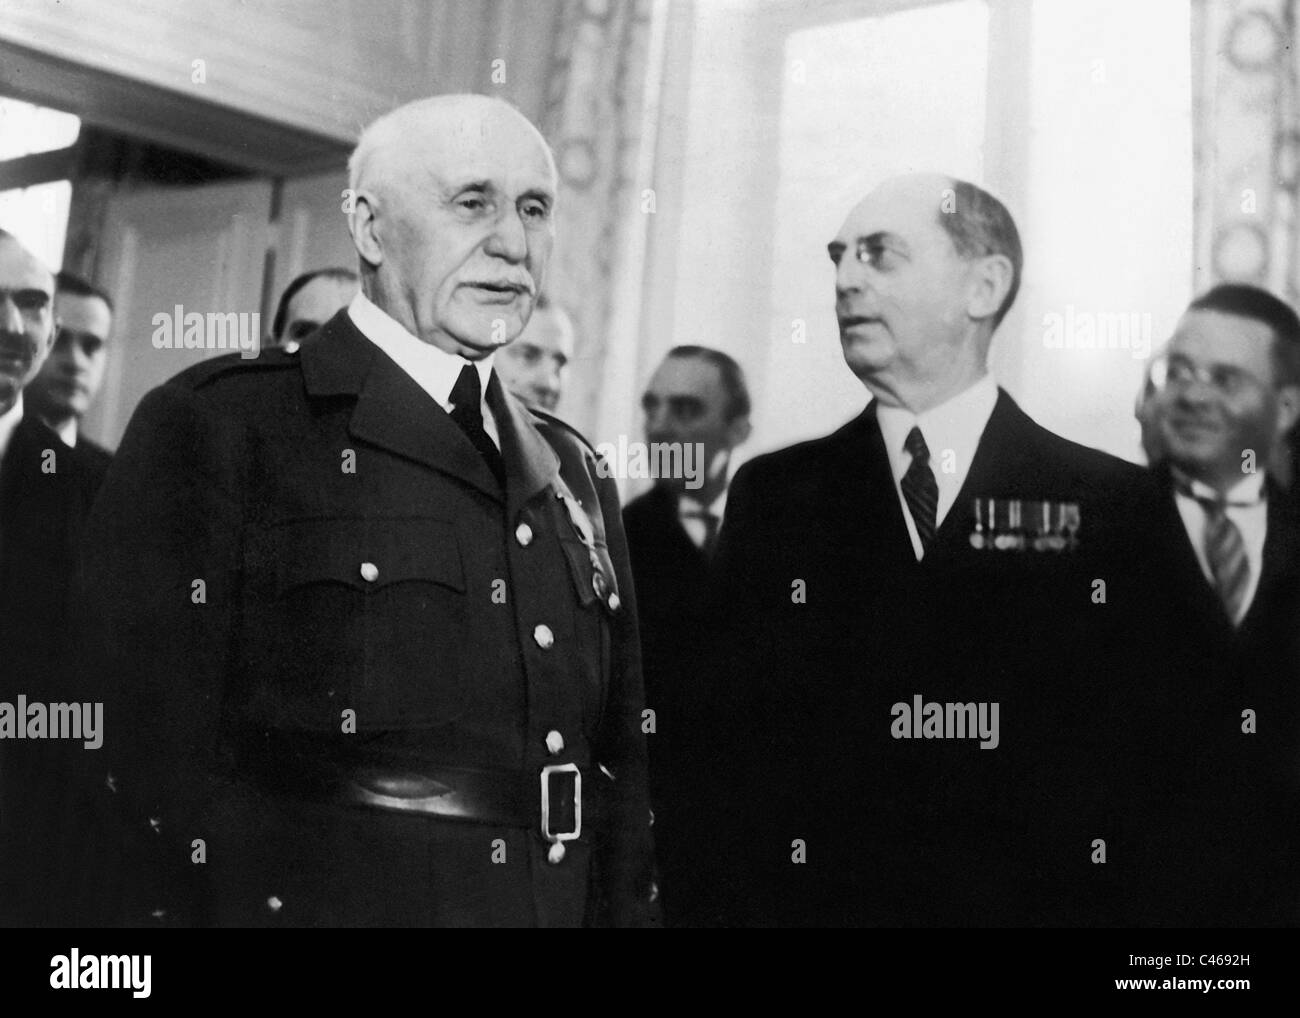 Henri Philippe Petain and William Leahy, 1941 - Stock Image